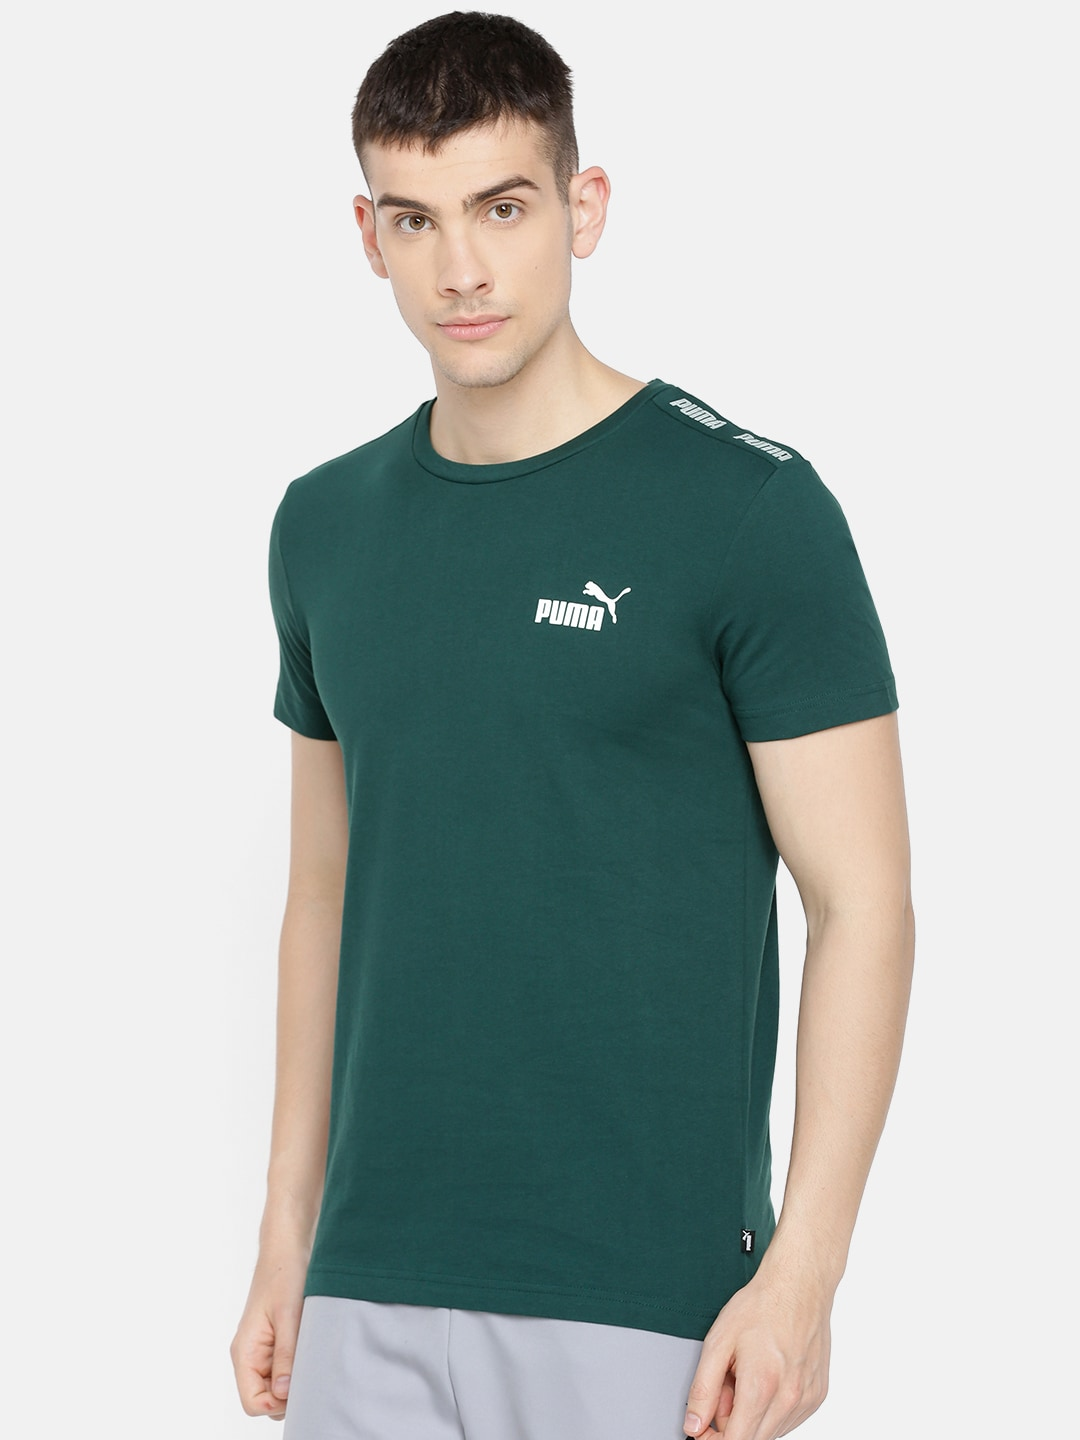 Green Slim Solid Men T Shirt Round Neck Fit Puma 8n0wkXPO